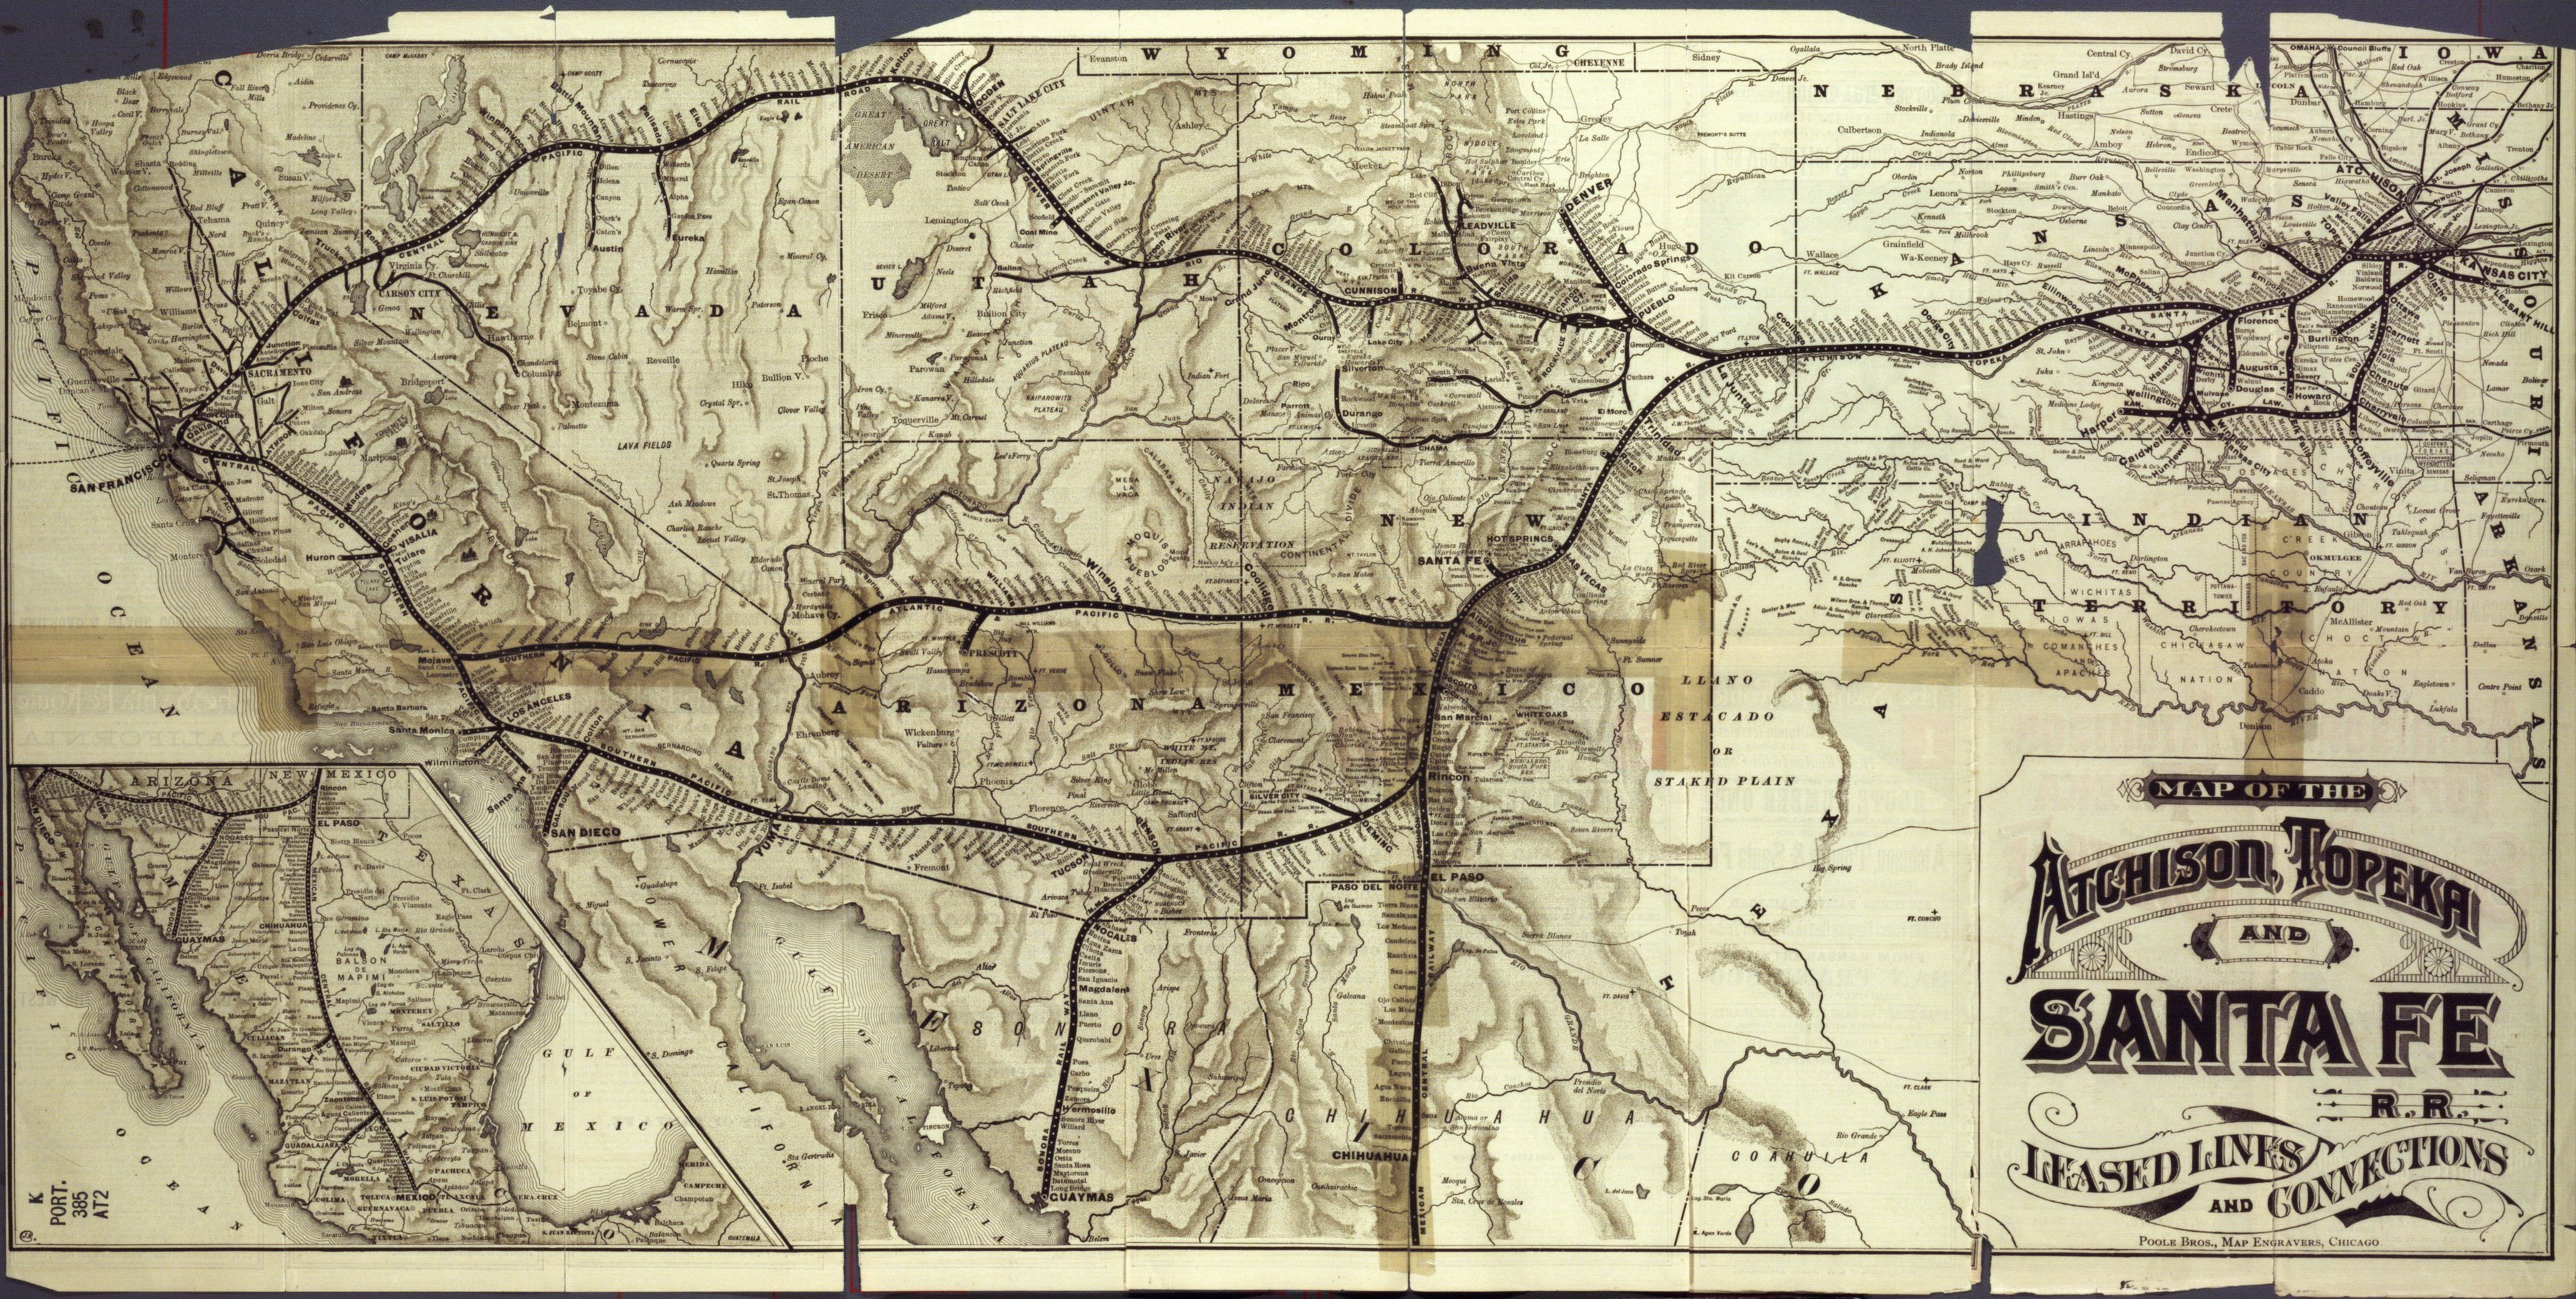 Three Routes To The Pacific Coast Via The Atchison Topeka And - Atchinson topeka and santa ferailroad on the us map